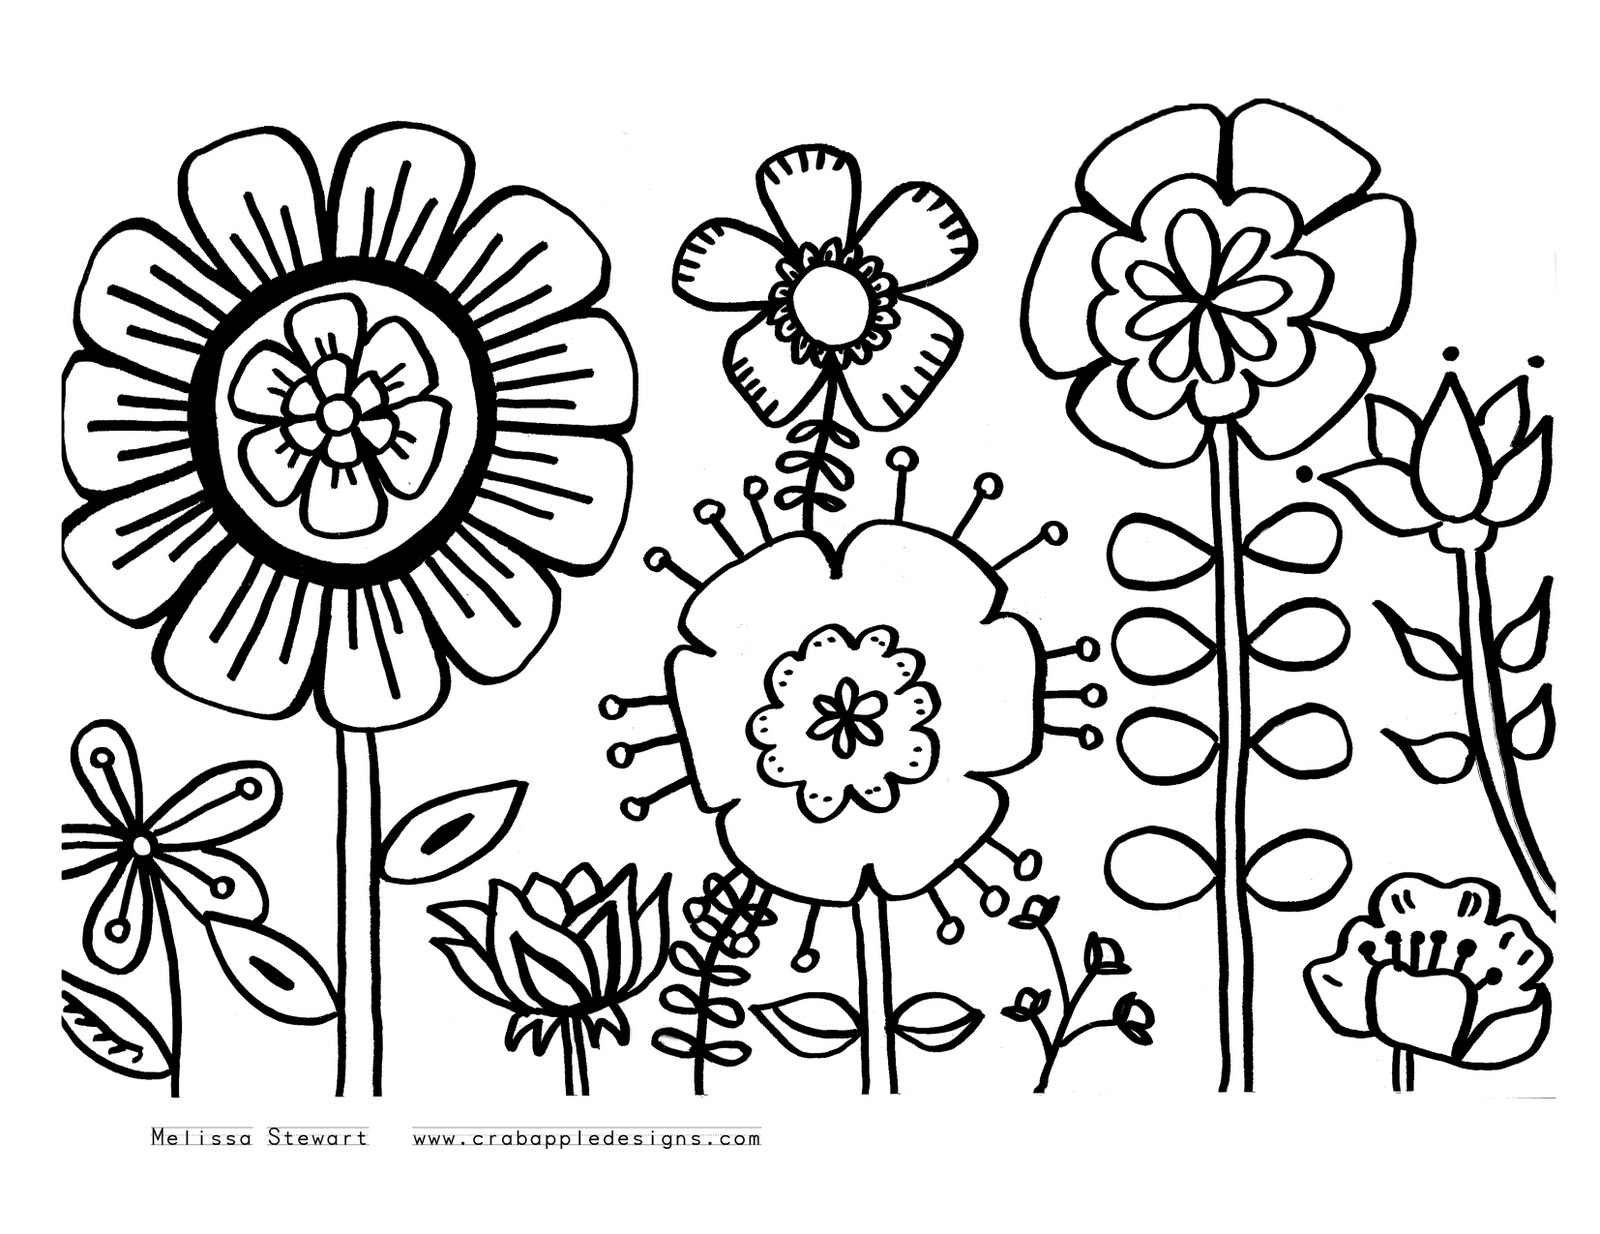 coloring in pages flowers | At Home With Crab Apple Designs: November 2011